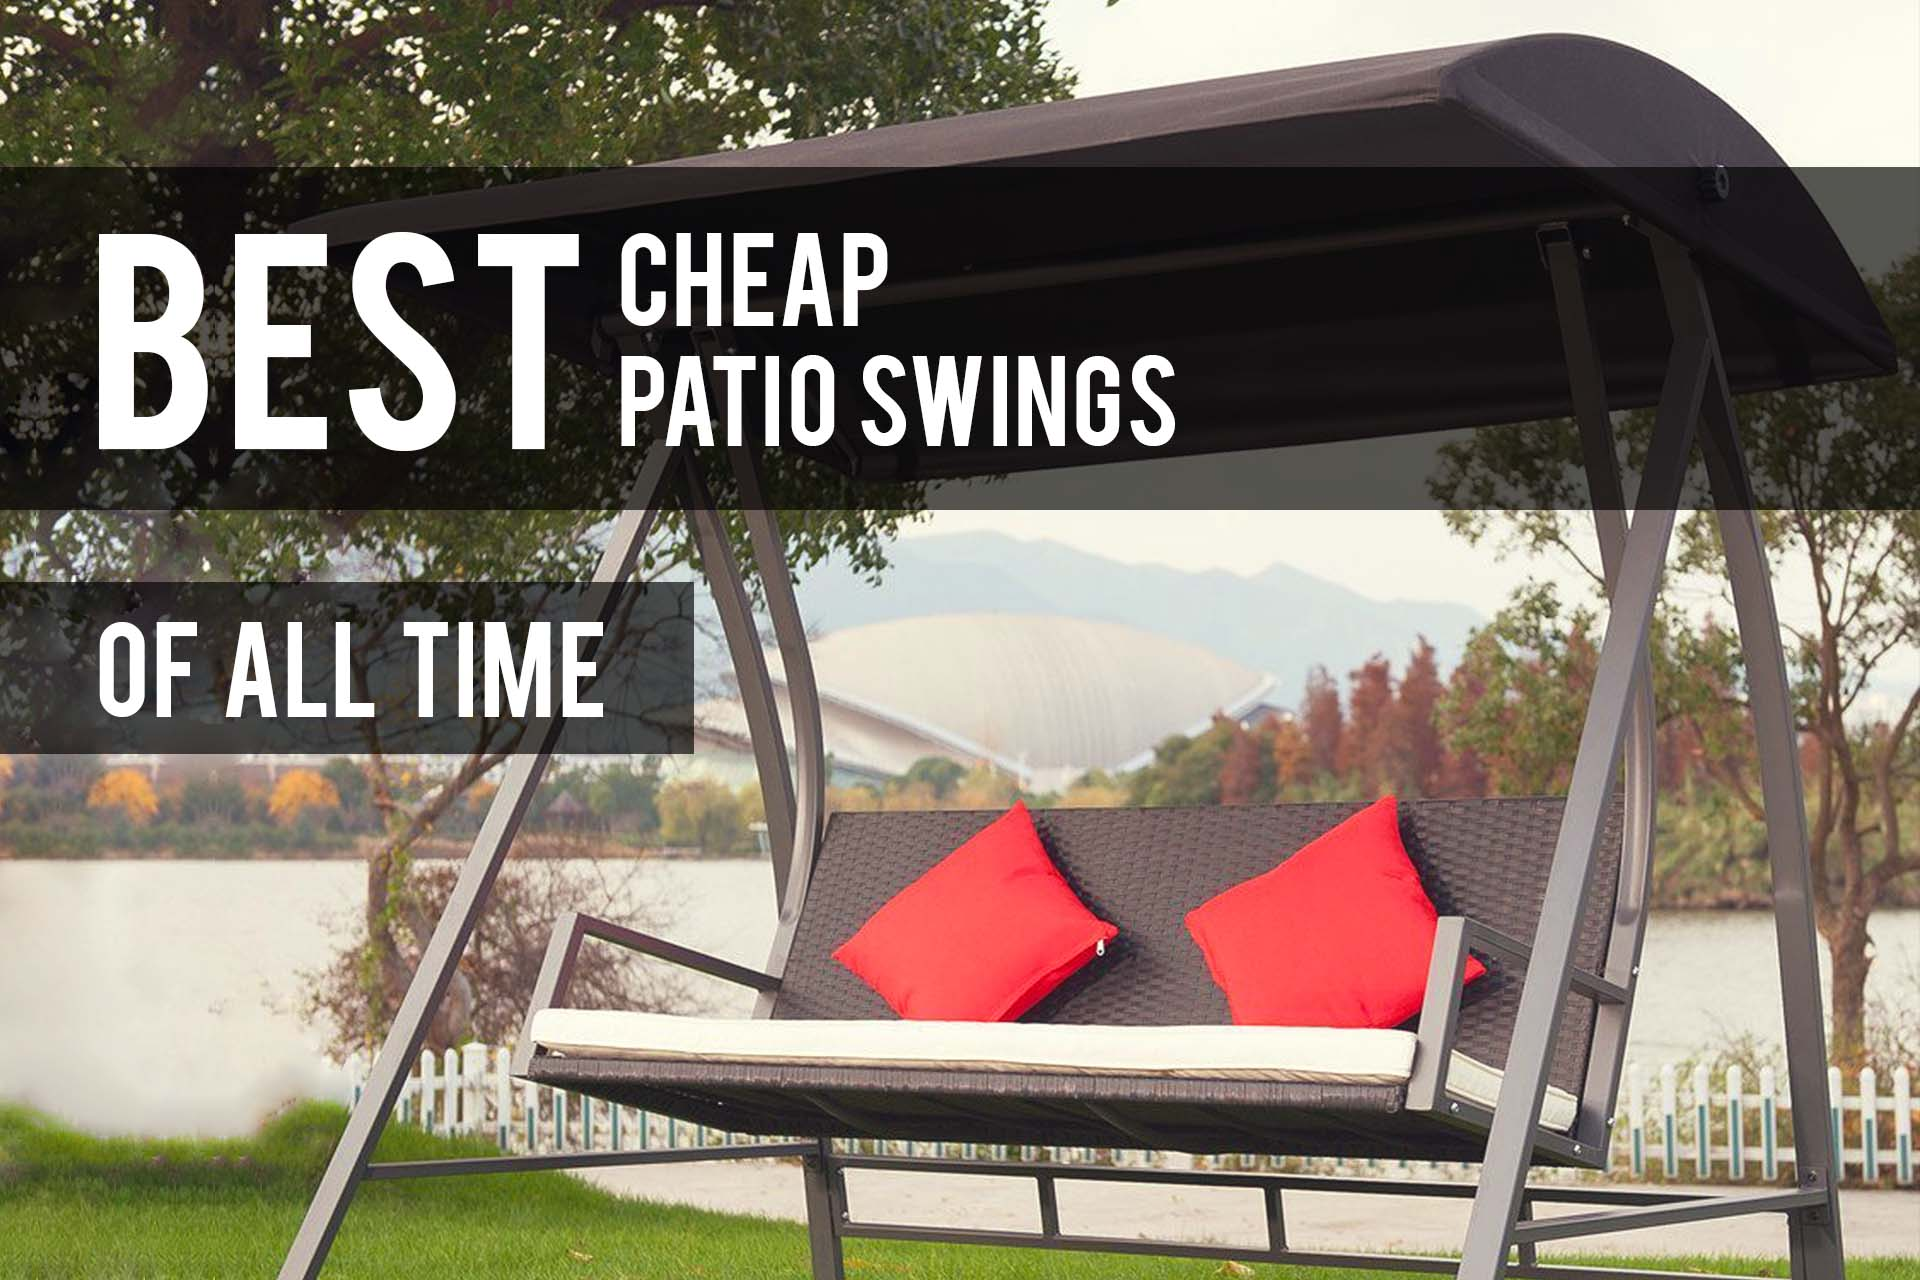 The Patio Pro & Best Cheap Patio Swings 2019 (Reviews) - The Patio Pro